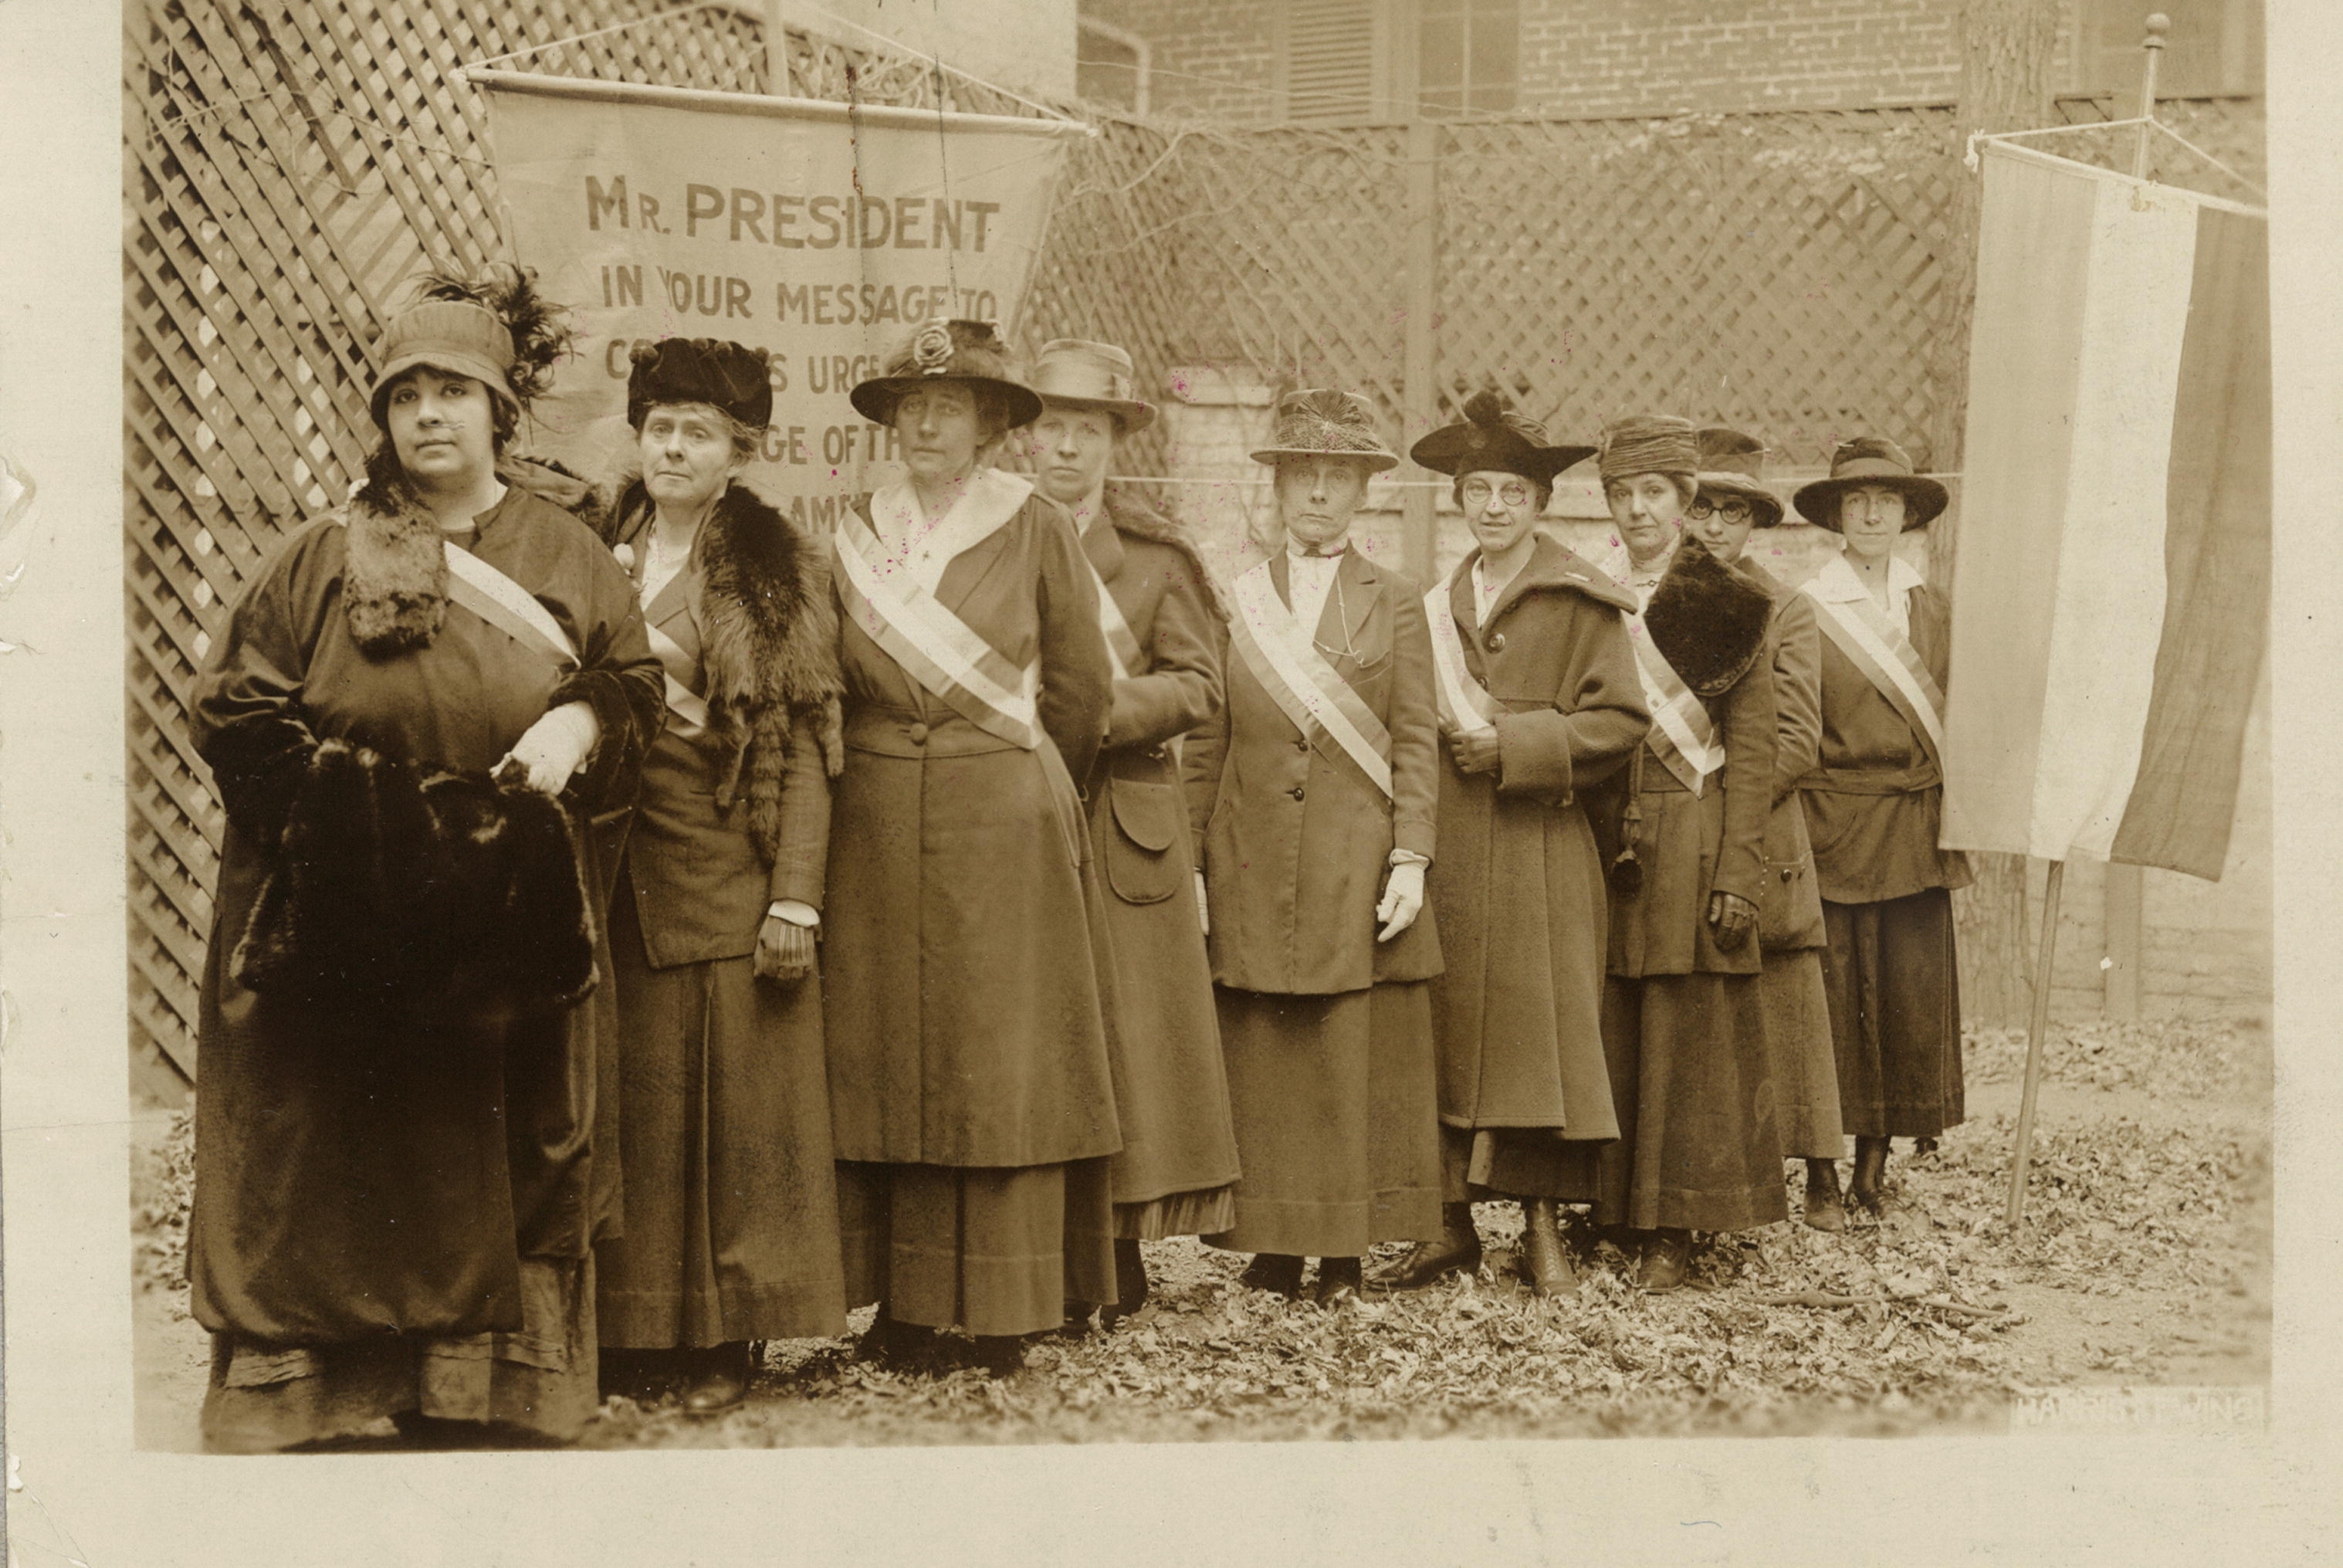 Suffrage picketers in Washington, D.C., on Nov. 10, 1917. Lovern Robertson of Salt Lake City is fourth from the left.